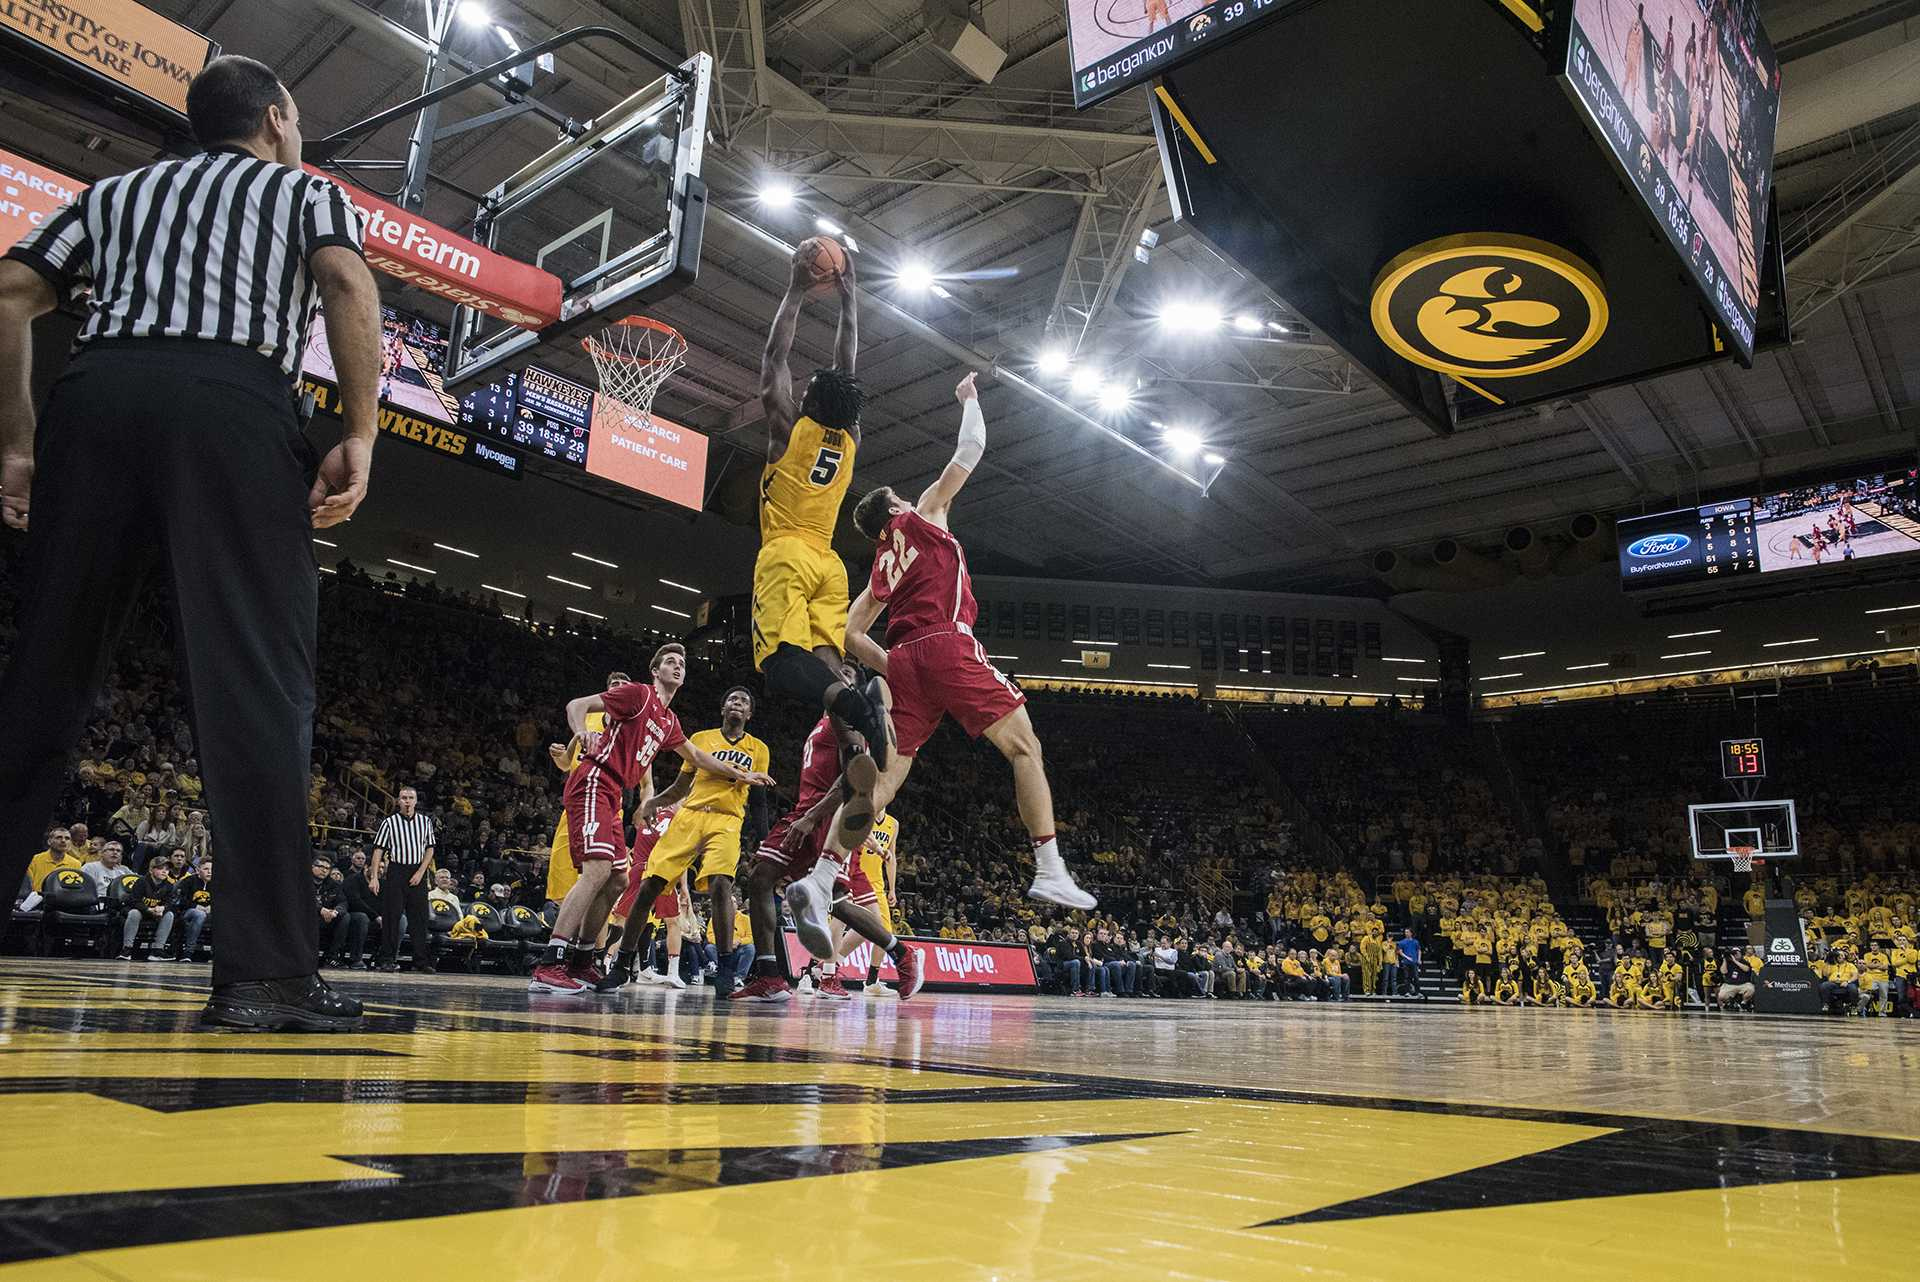 Iowa forward Tyler Cook (5) dunks the ball over Wisconsin's Ethan Happ (22) during the NCAA men's basketball game between Iowa and Wisconsin at Carver-Hawkeye Arena on Tuesday, Jan. 23, 2018. The Hawkeyes are going into the game with a conference record of 1-7. Iowa went on to defeat Wisconsin 85-67. (Ben Allan Smith/The Daily Iowan)